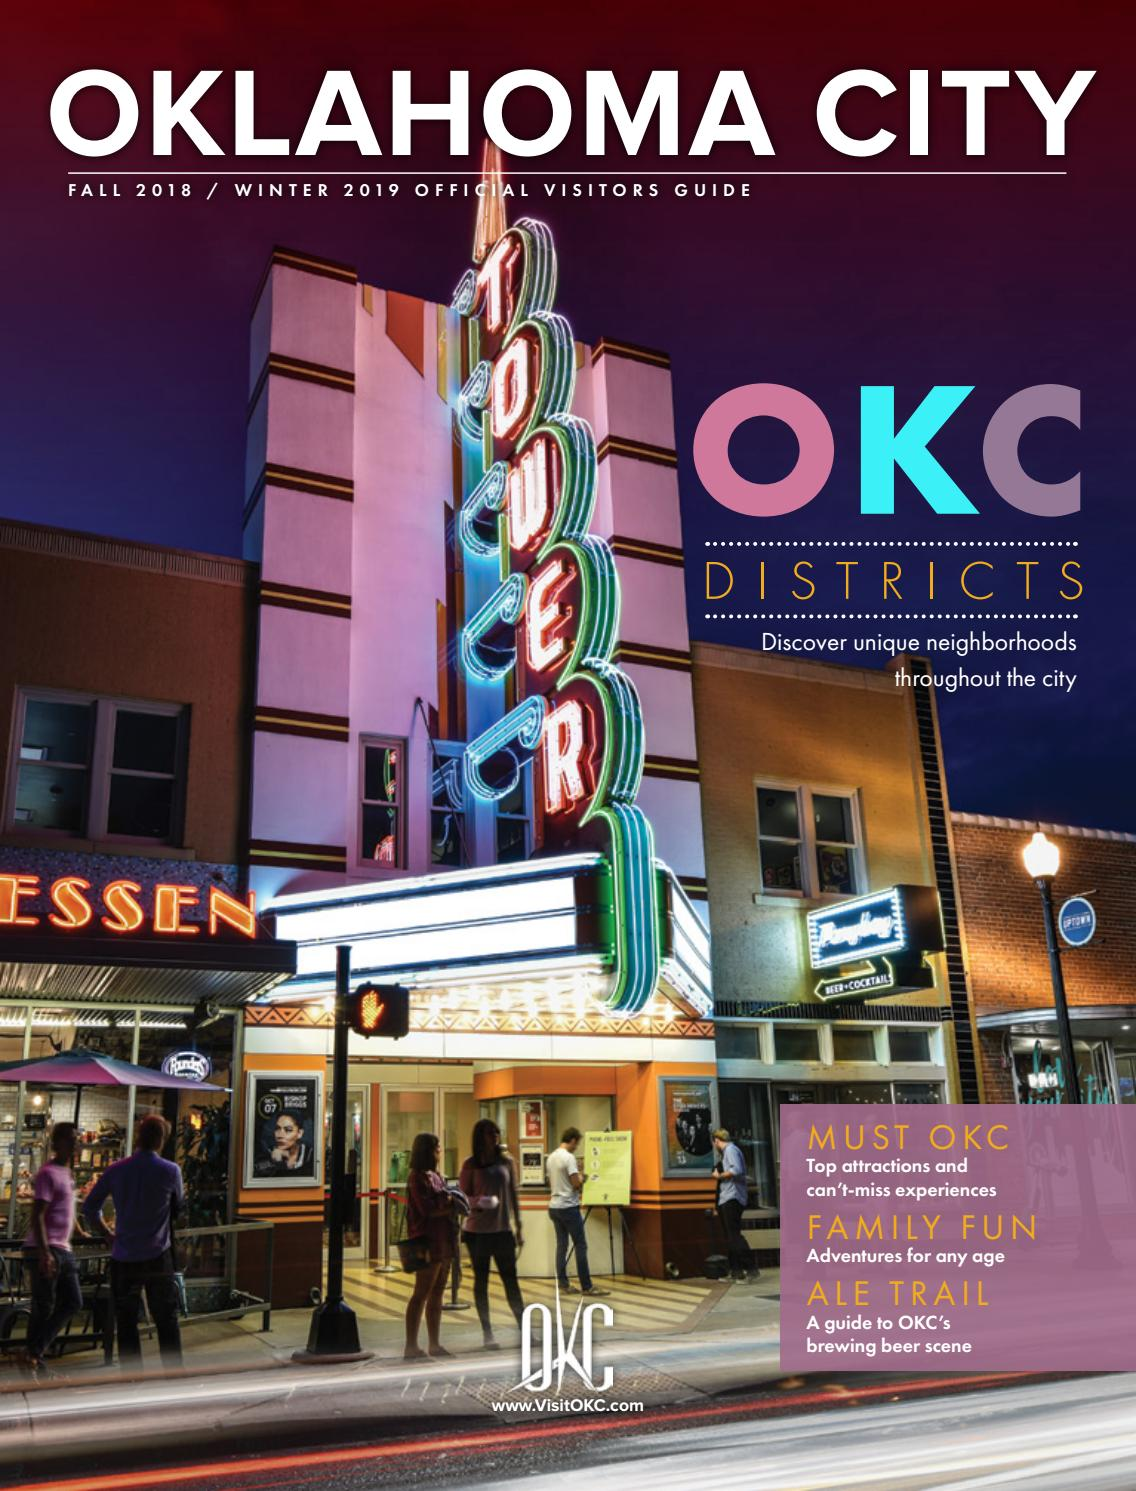 Oklahoma City Fall 2018 Winter 2019 Official Visitors